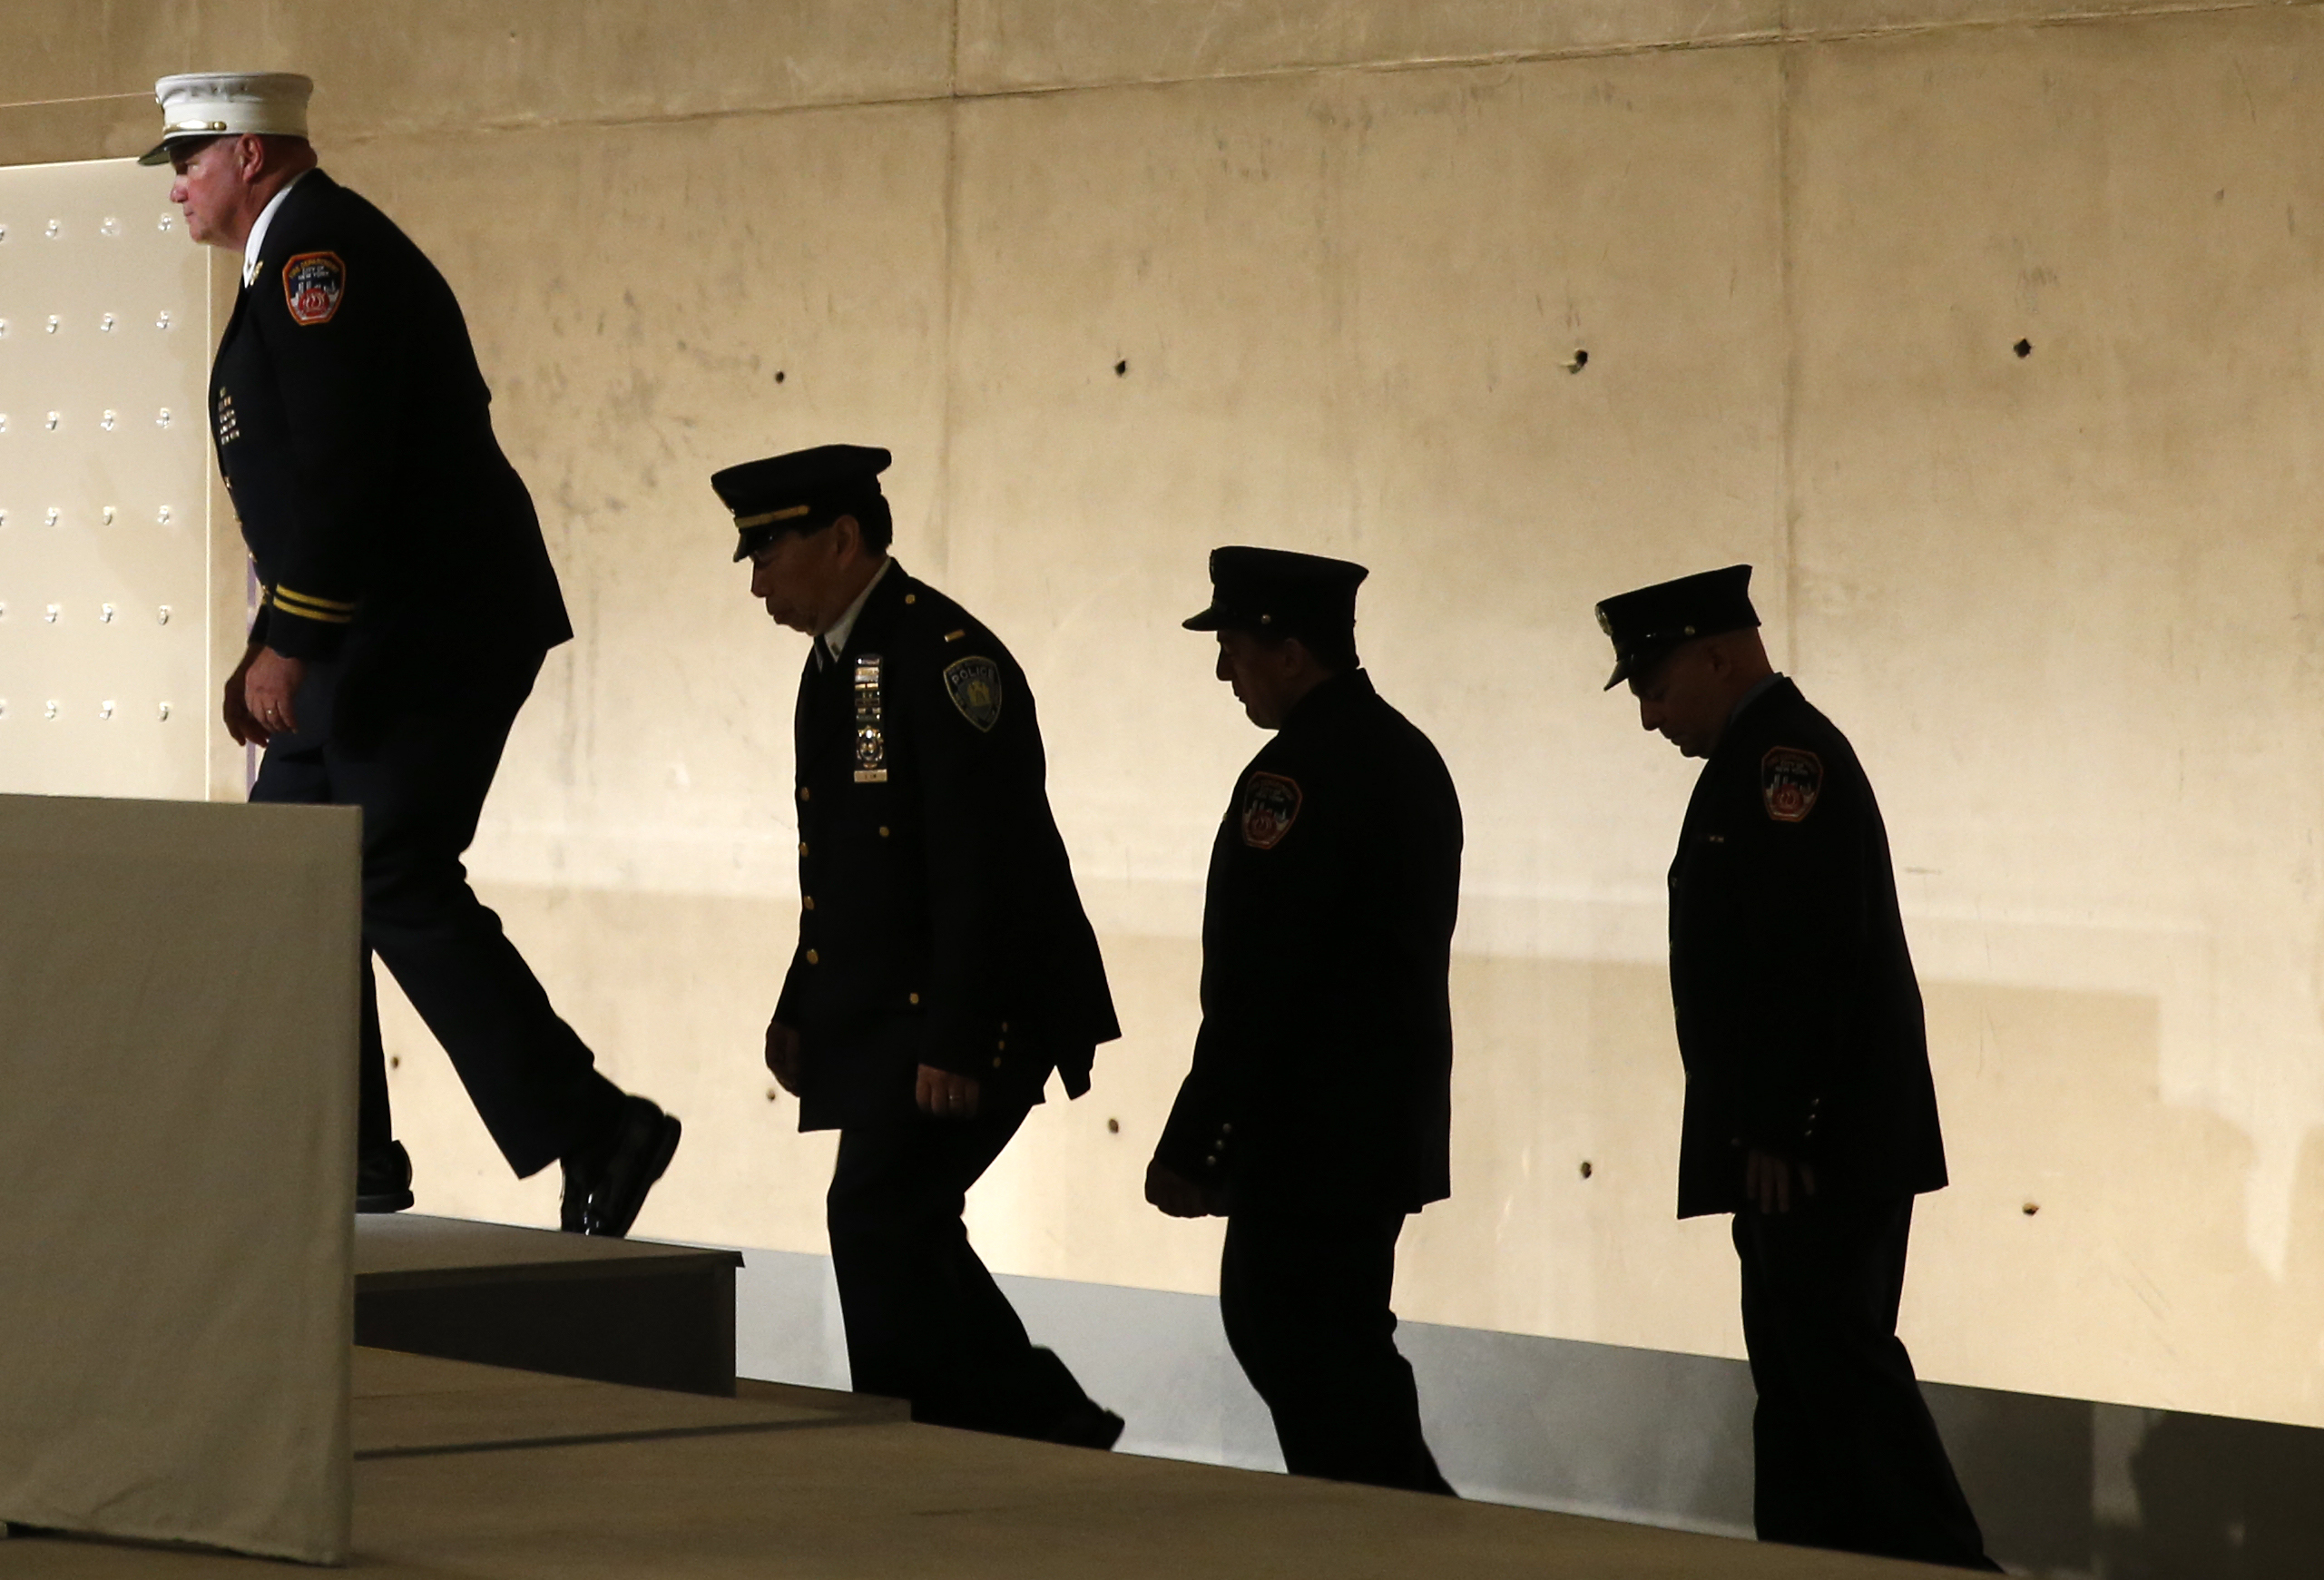 First responders step onto the stage (Mike Segar/REUTERS)